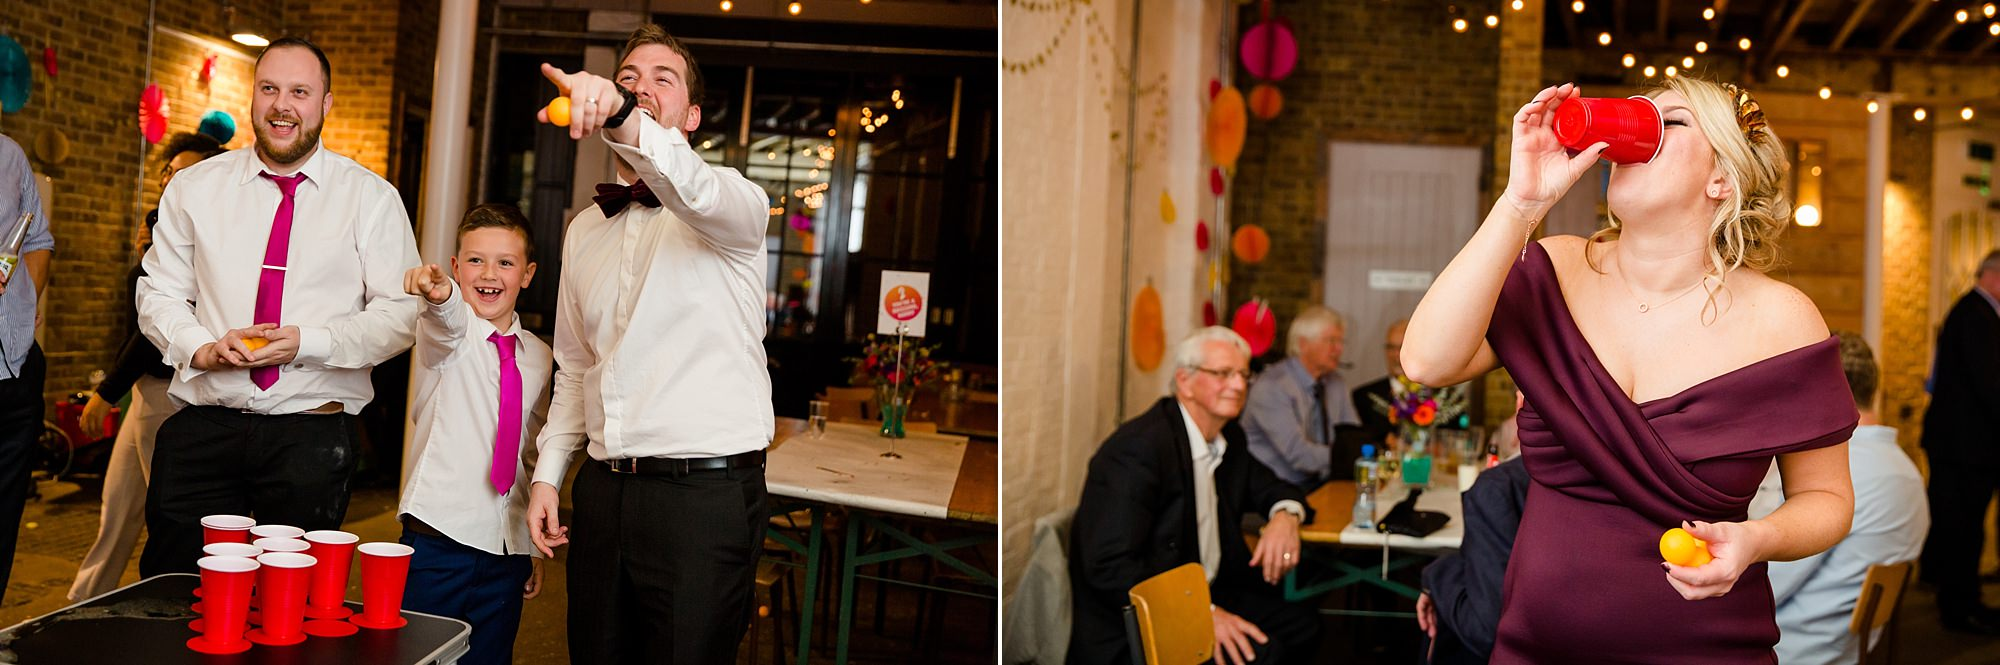 Fun London Wedding guests cheer as they play beer pong